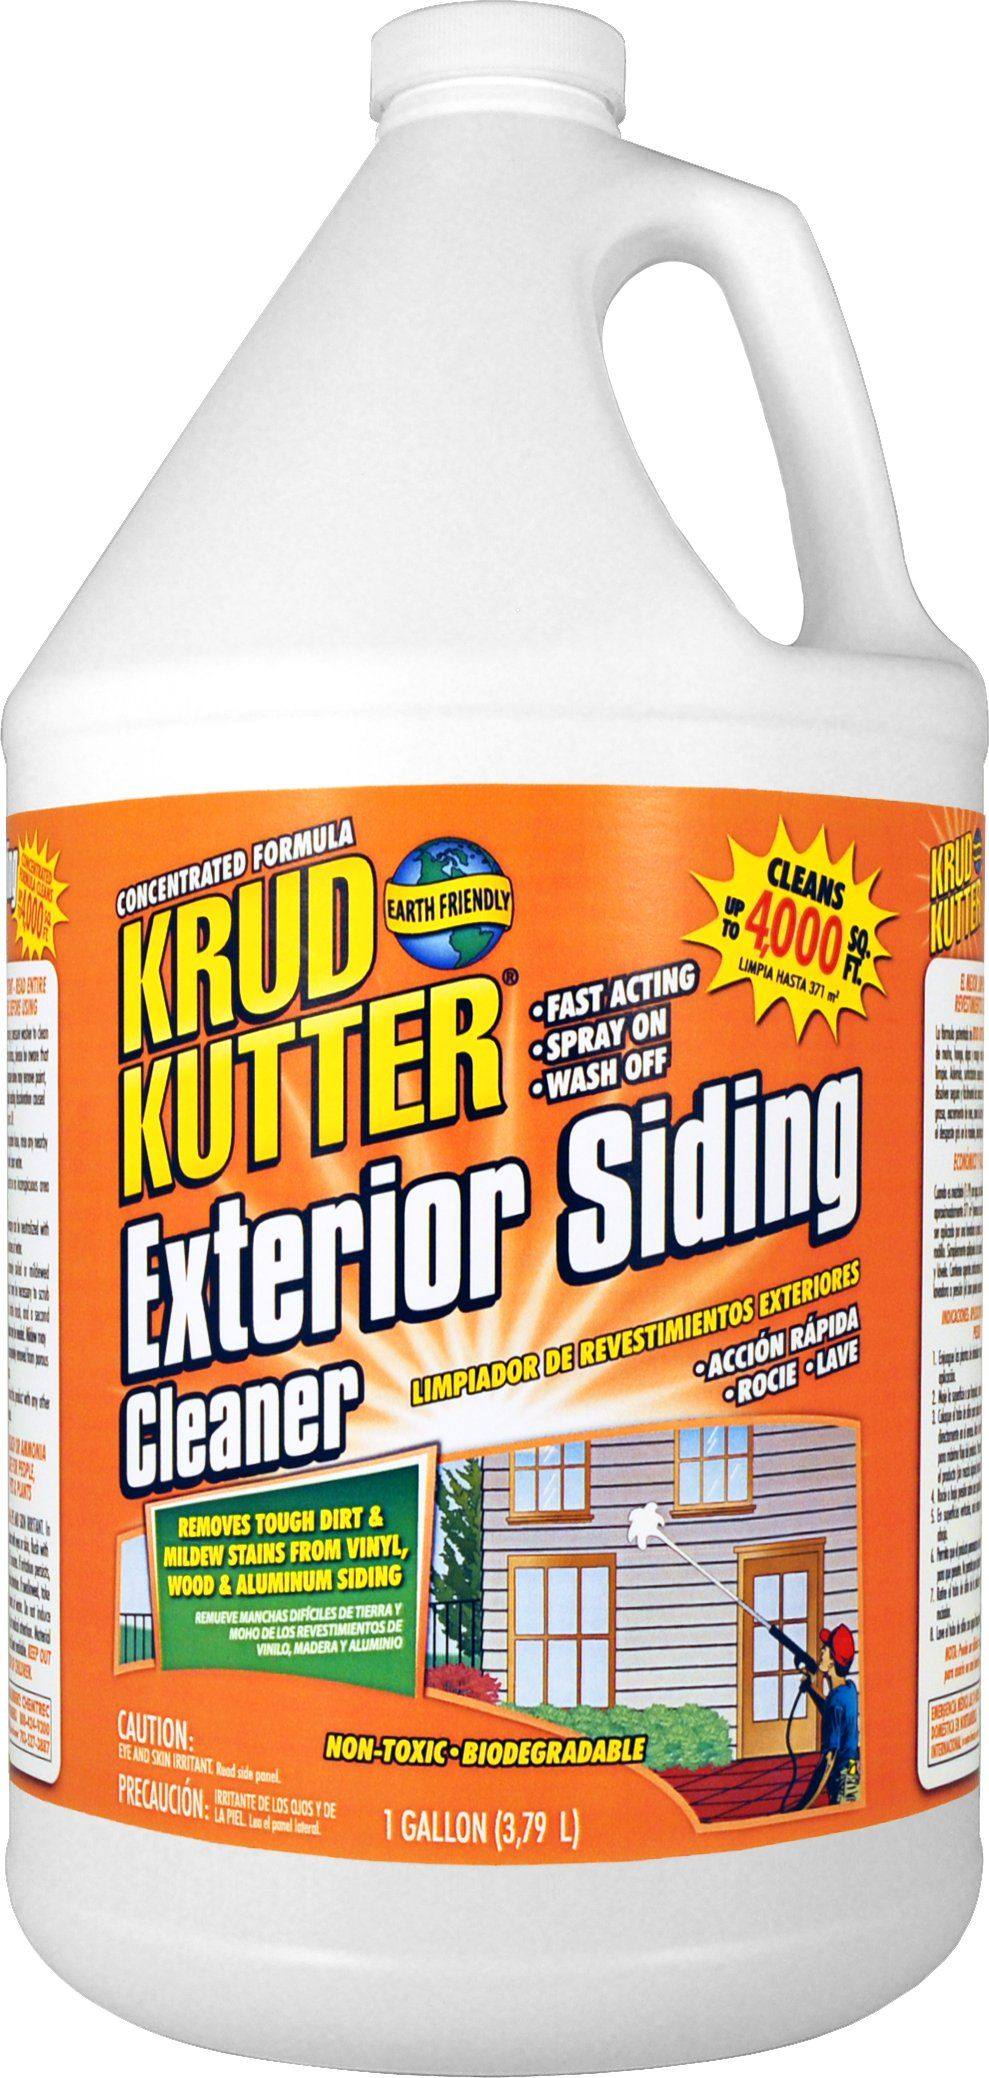 Best Pressure Washer Detergent For Cars More Best Pressure Washer Tough Stain Exterior Siding